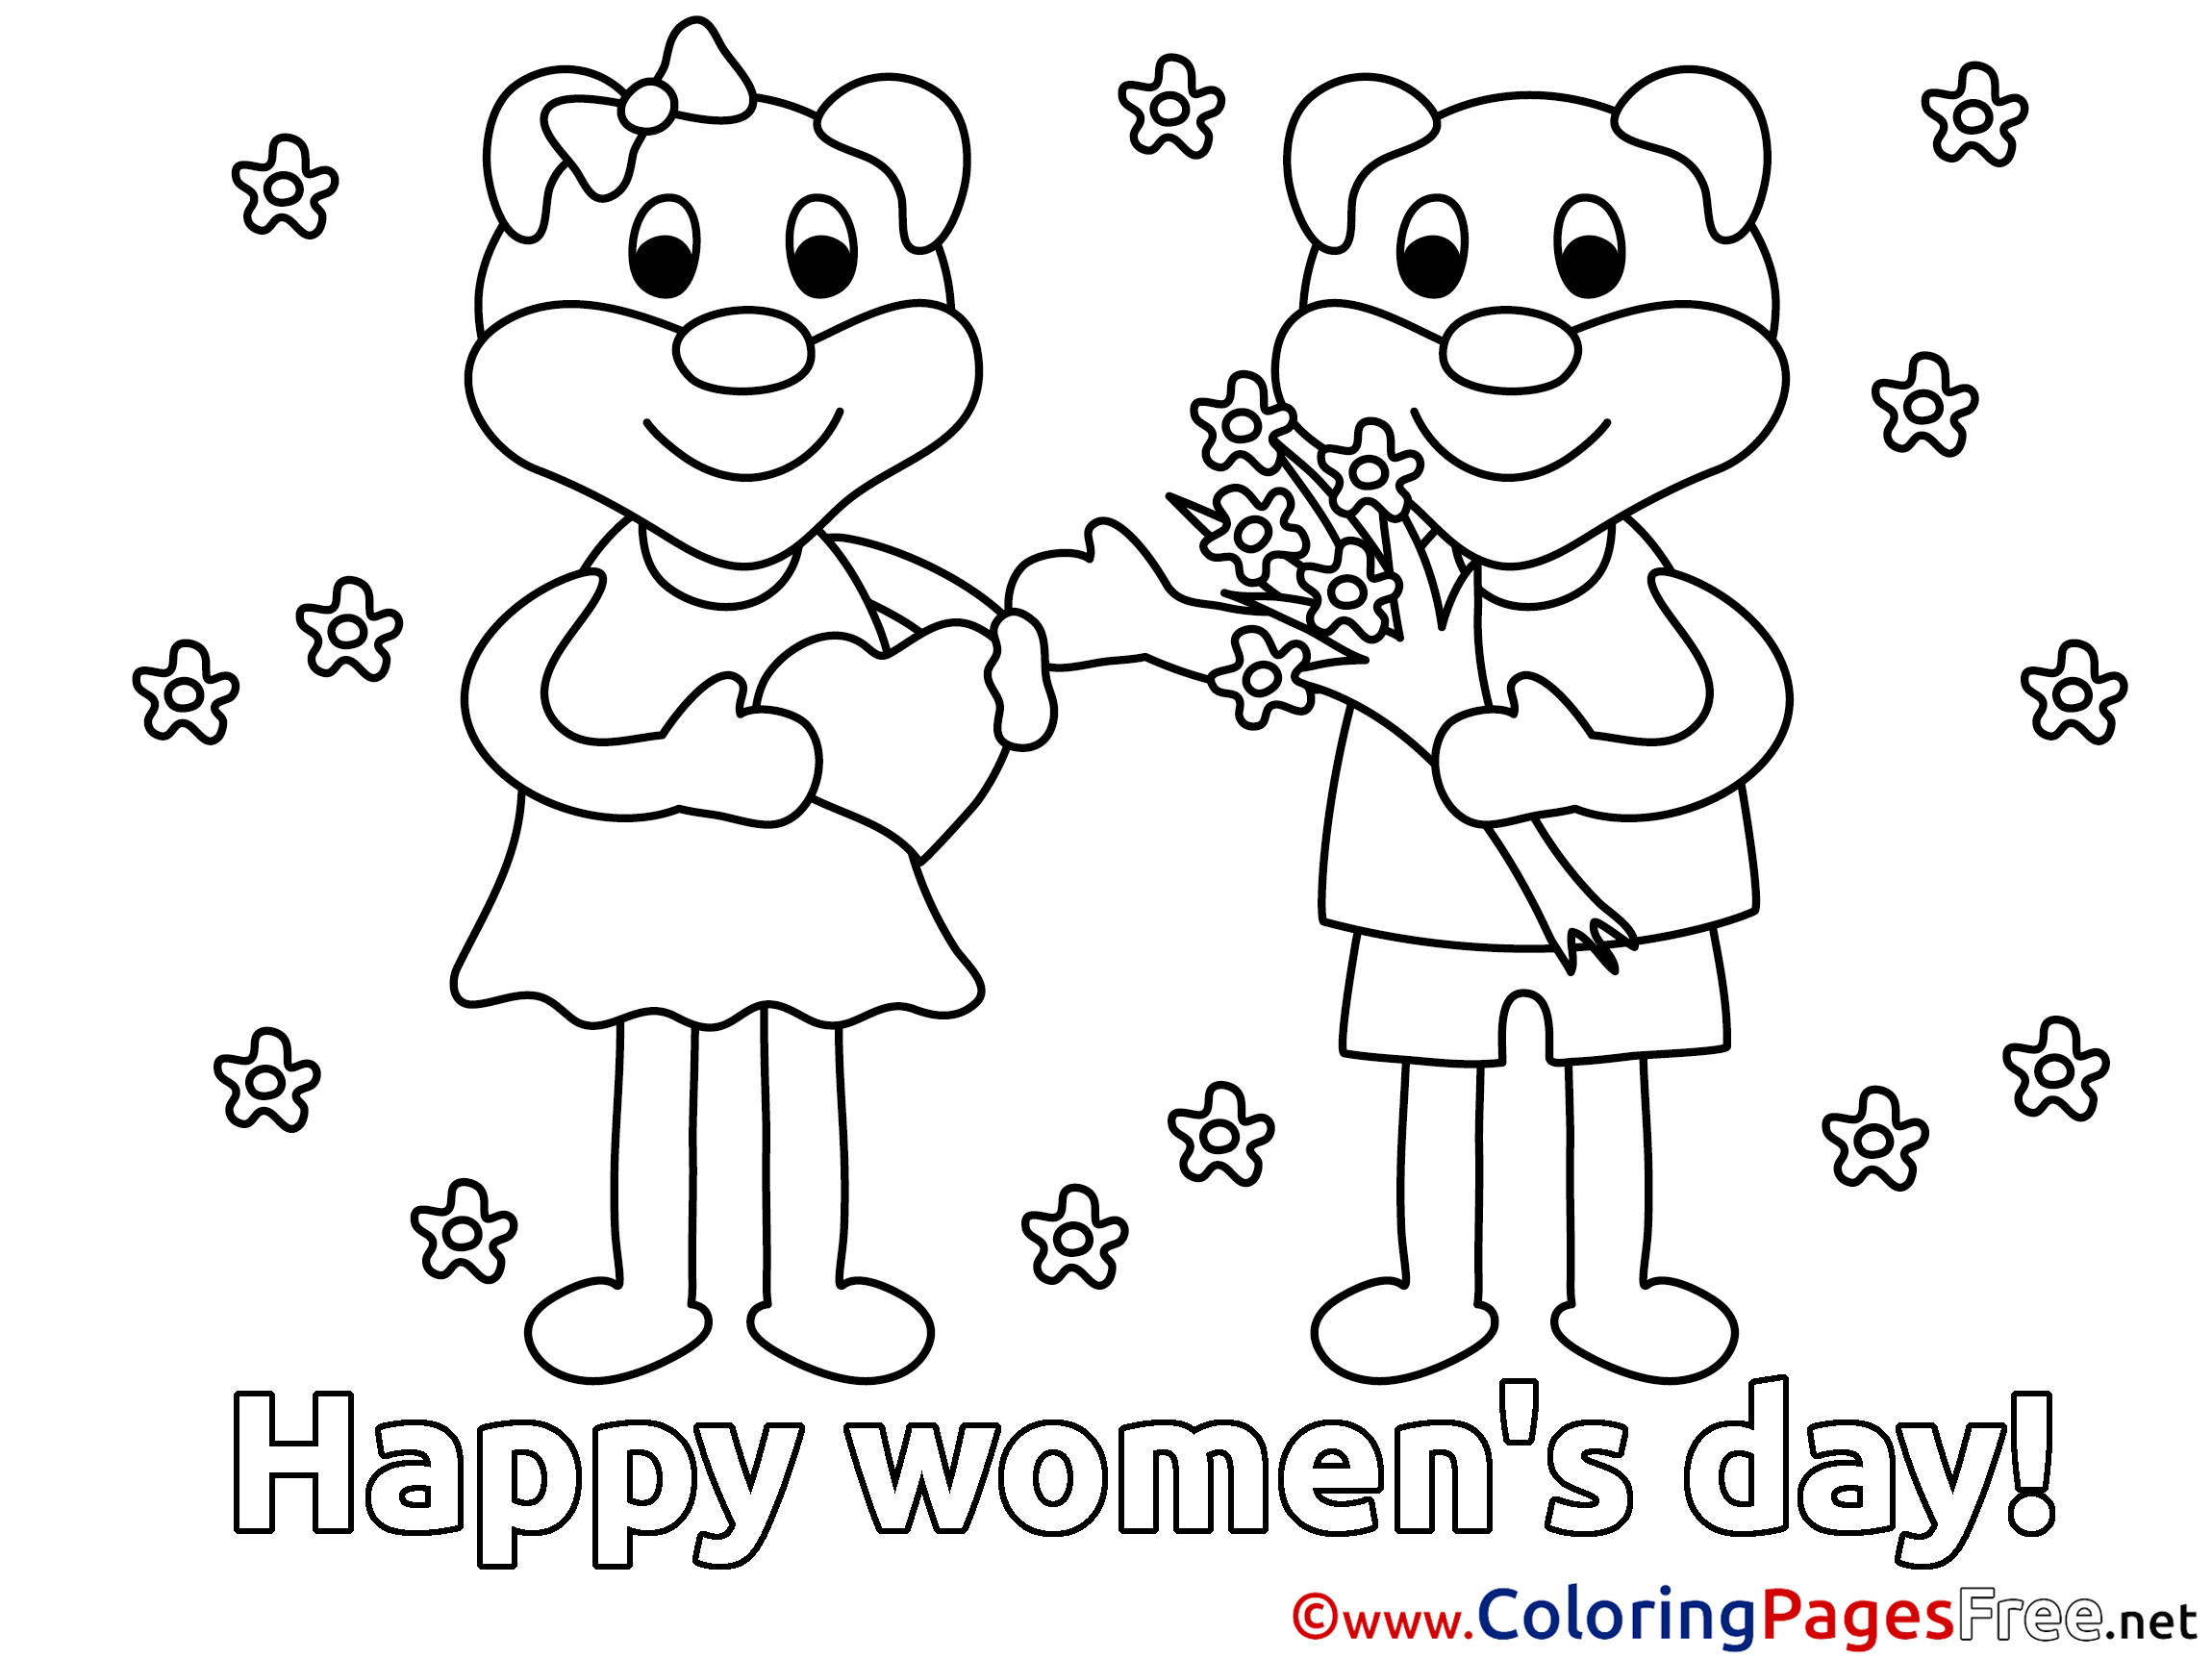 Childrens day colouring pages - Childrens Day Colouring Pages 13